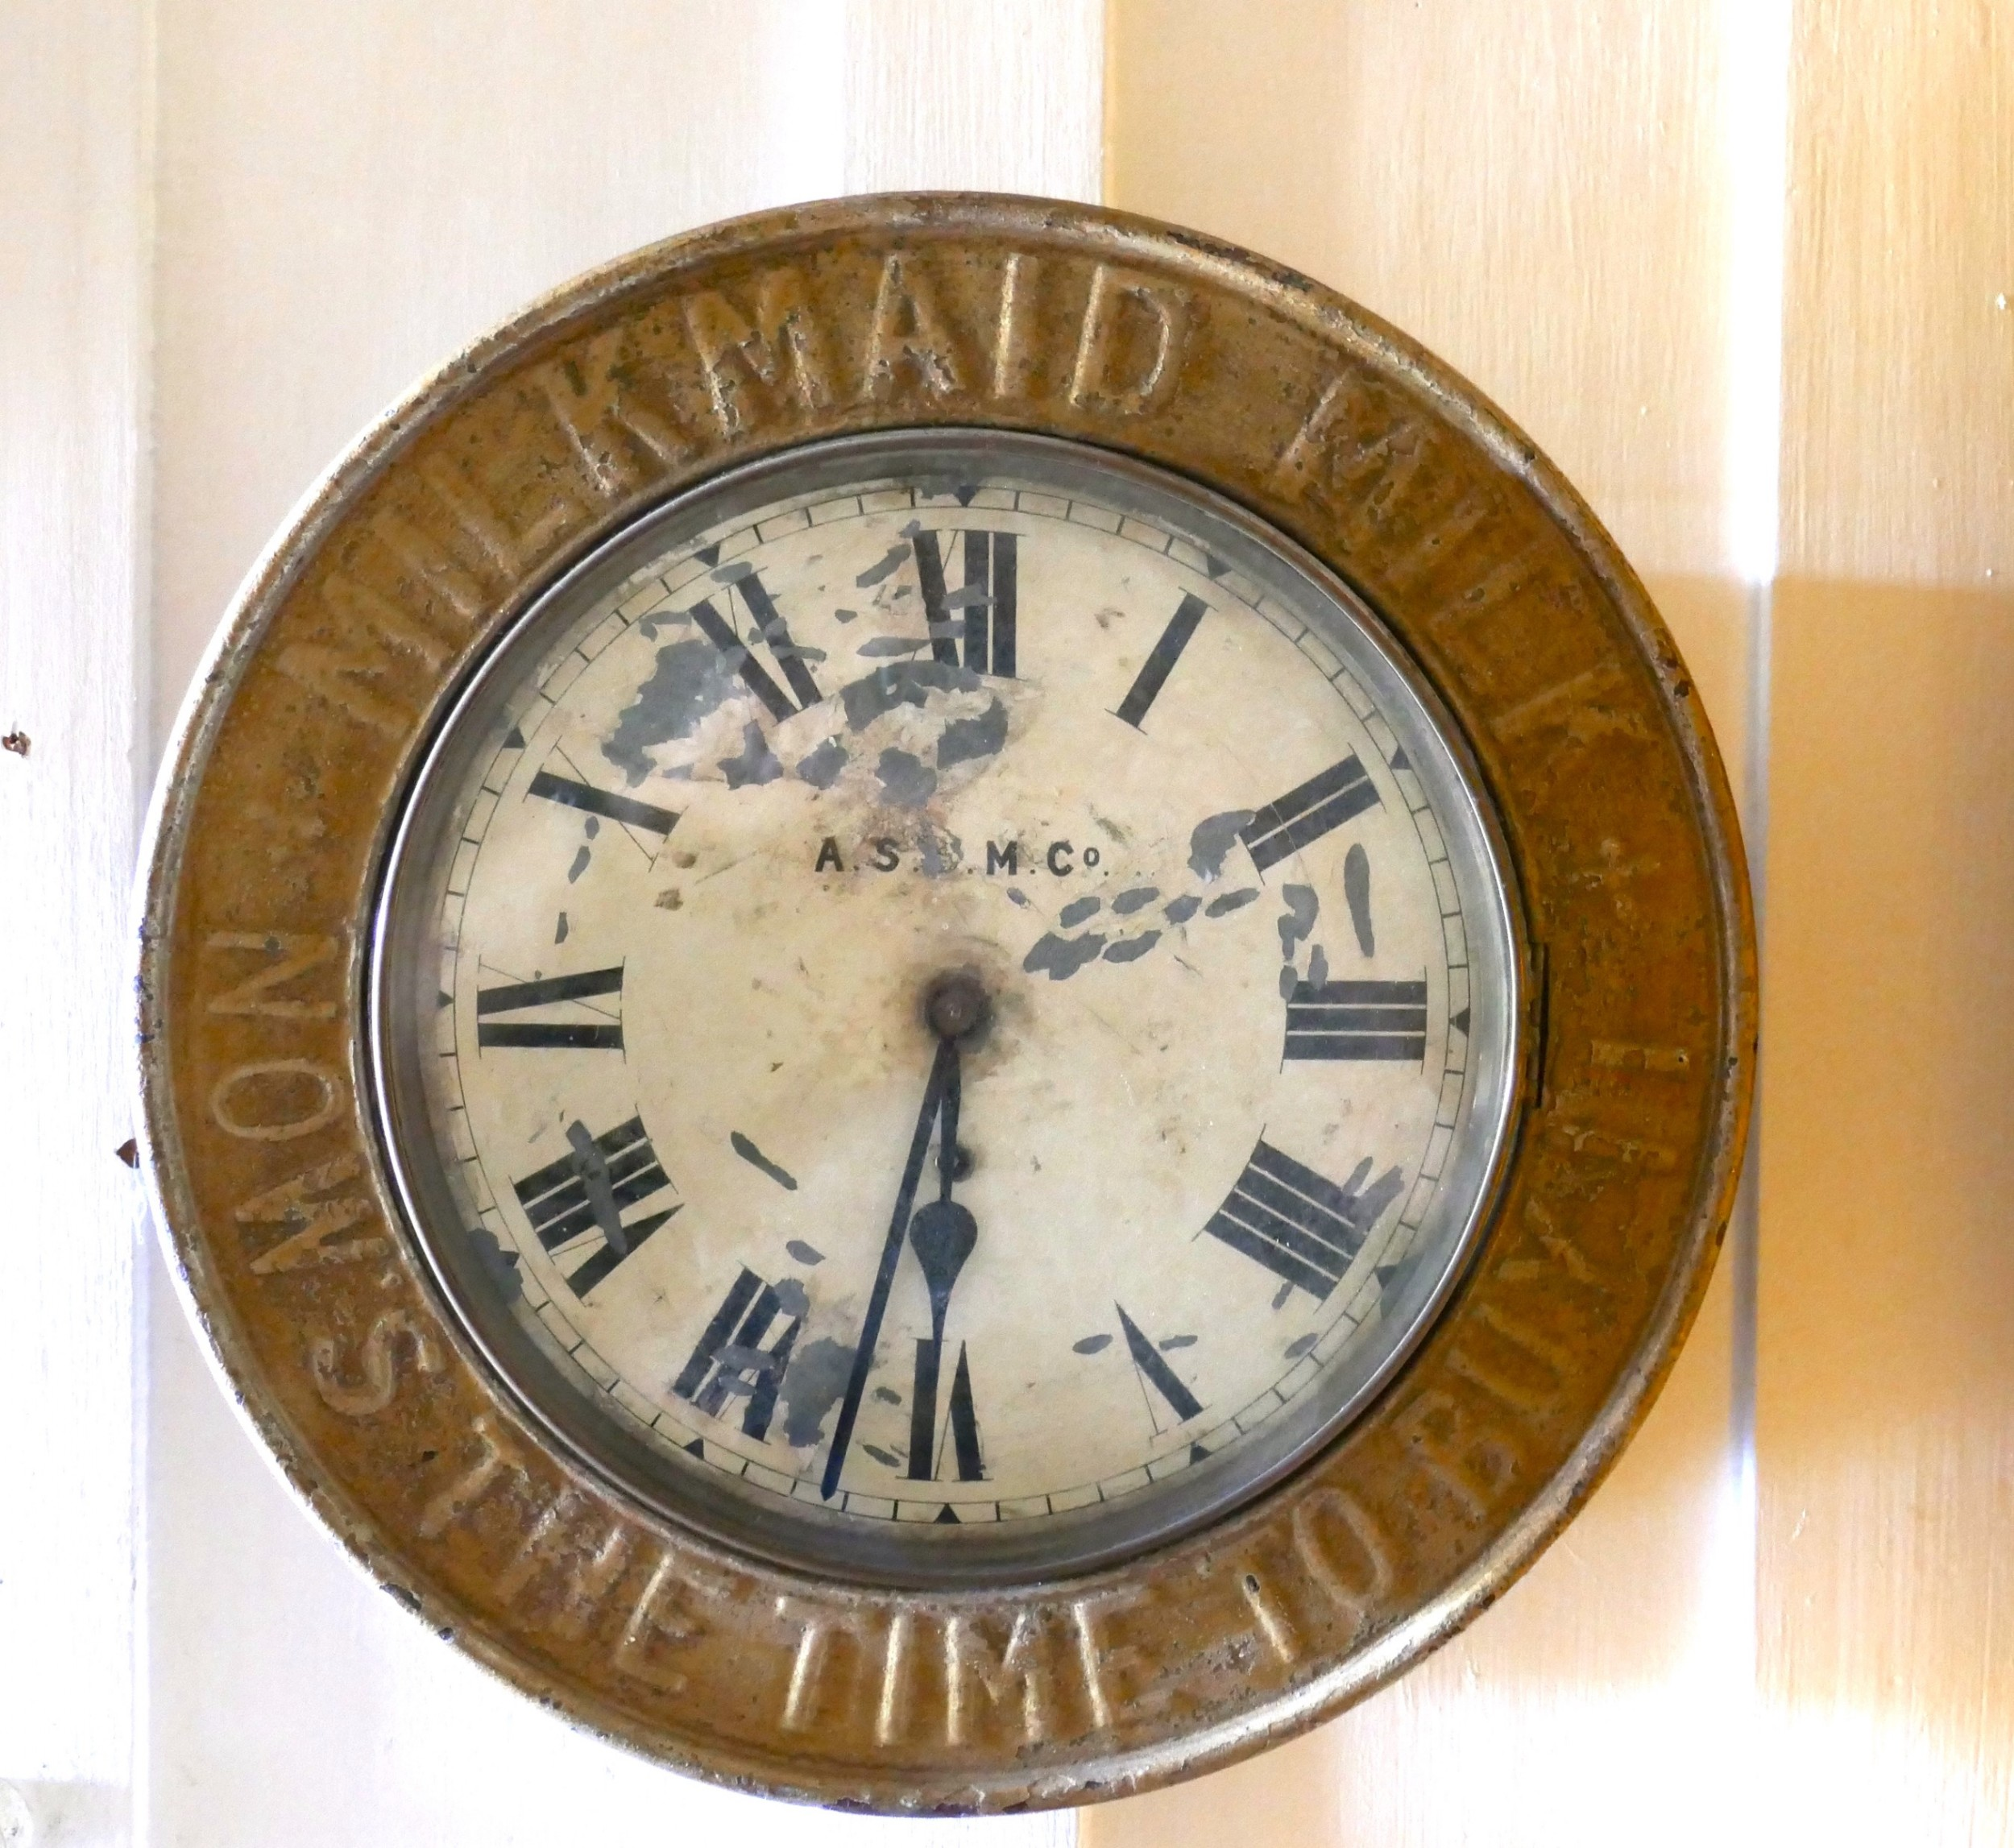 original mikmaid milk advertising clock by the ascm co